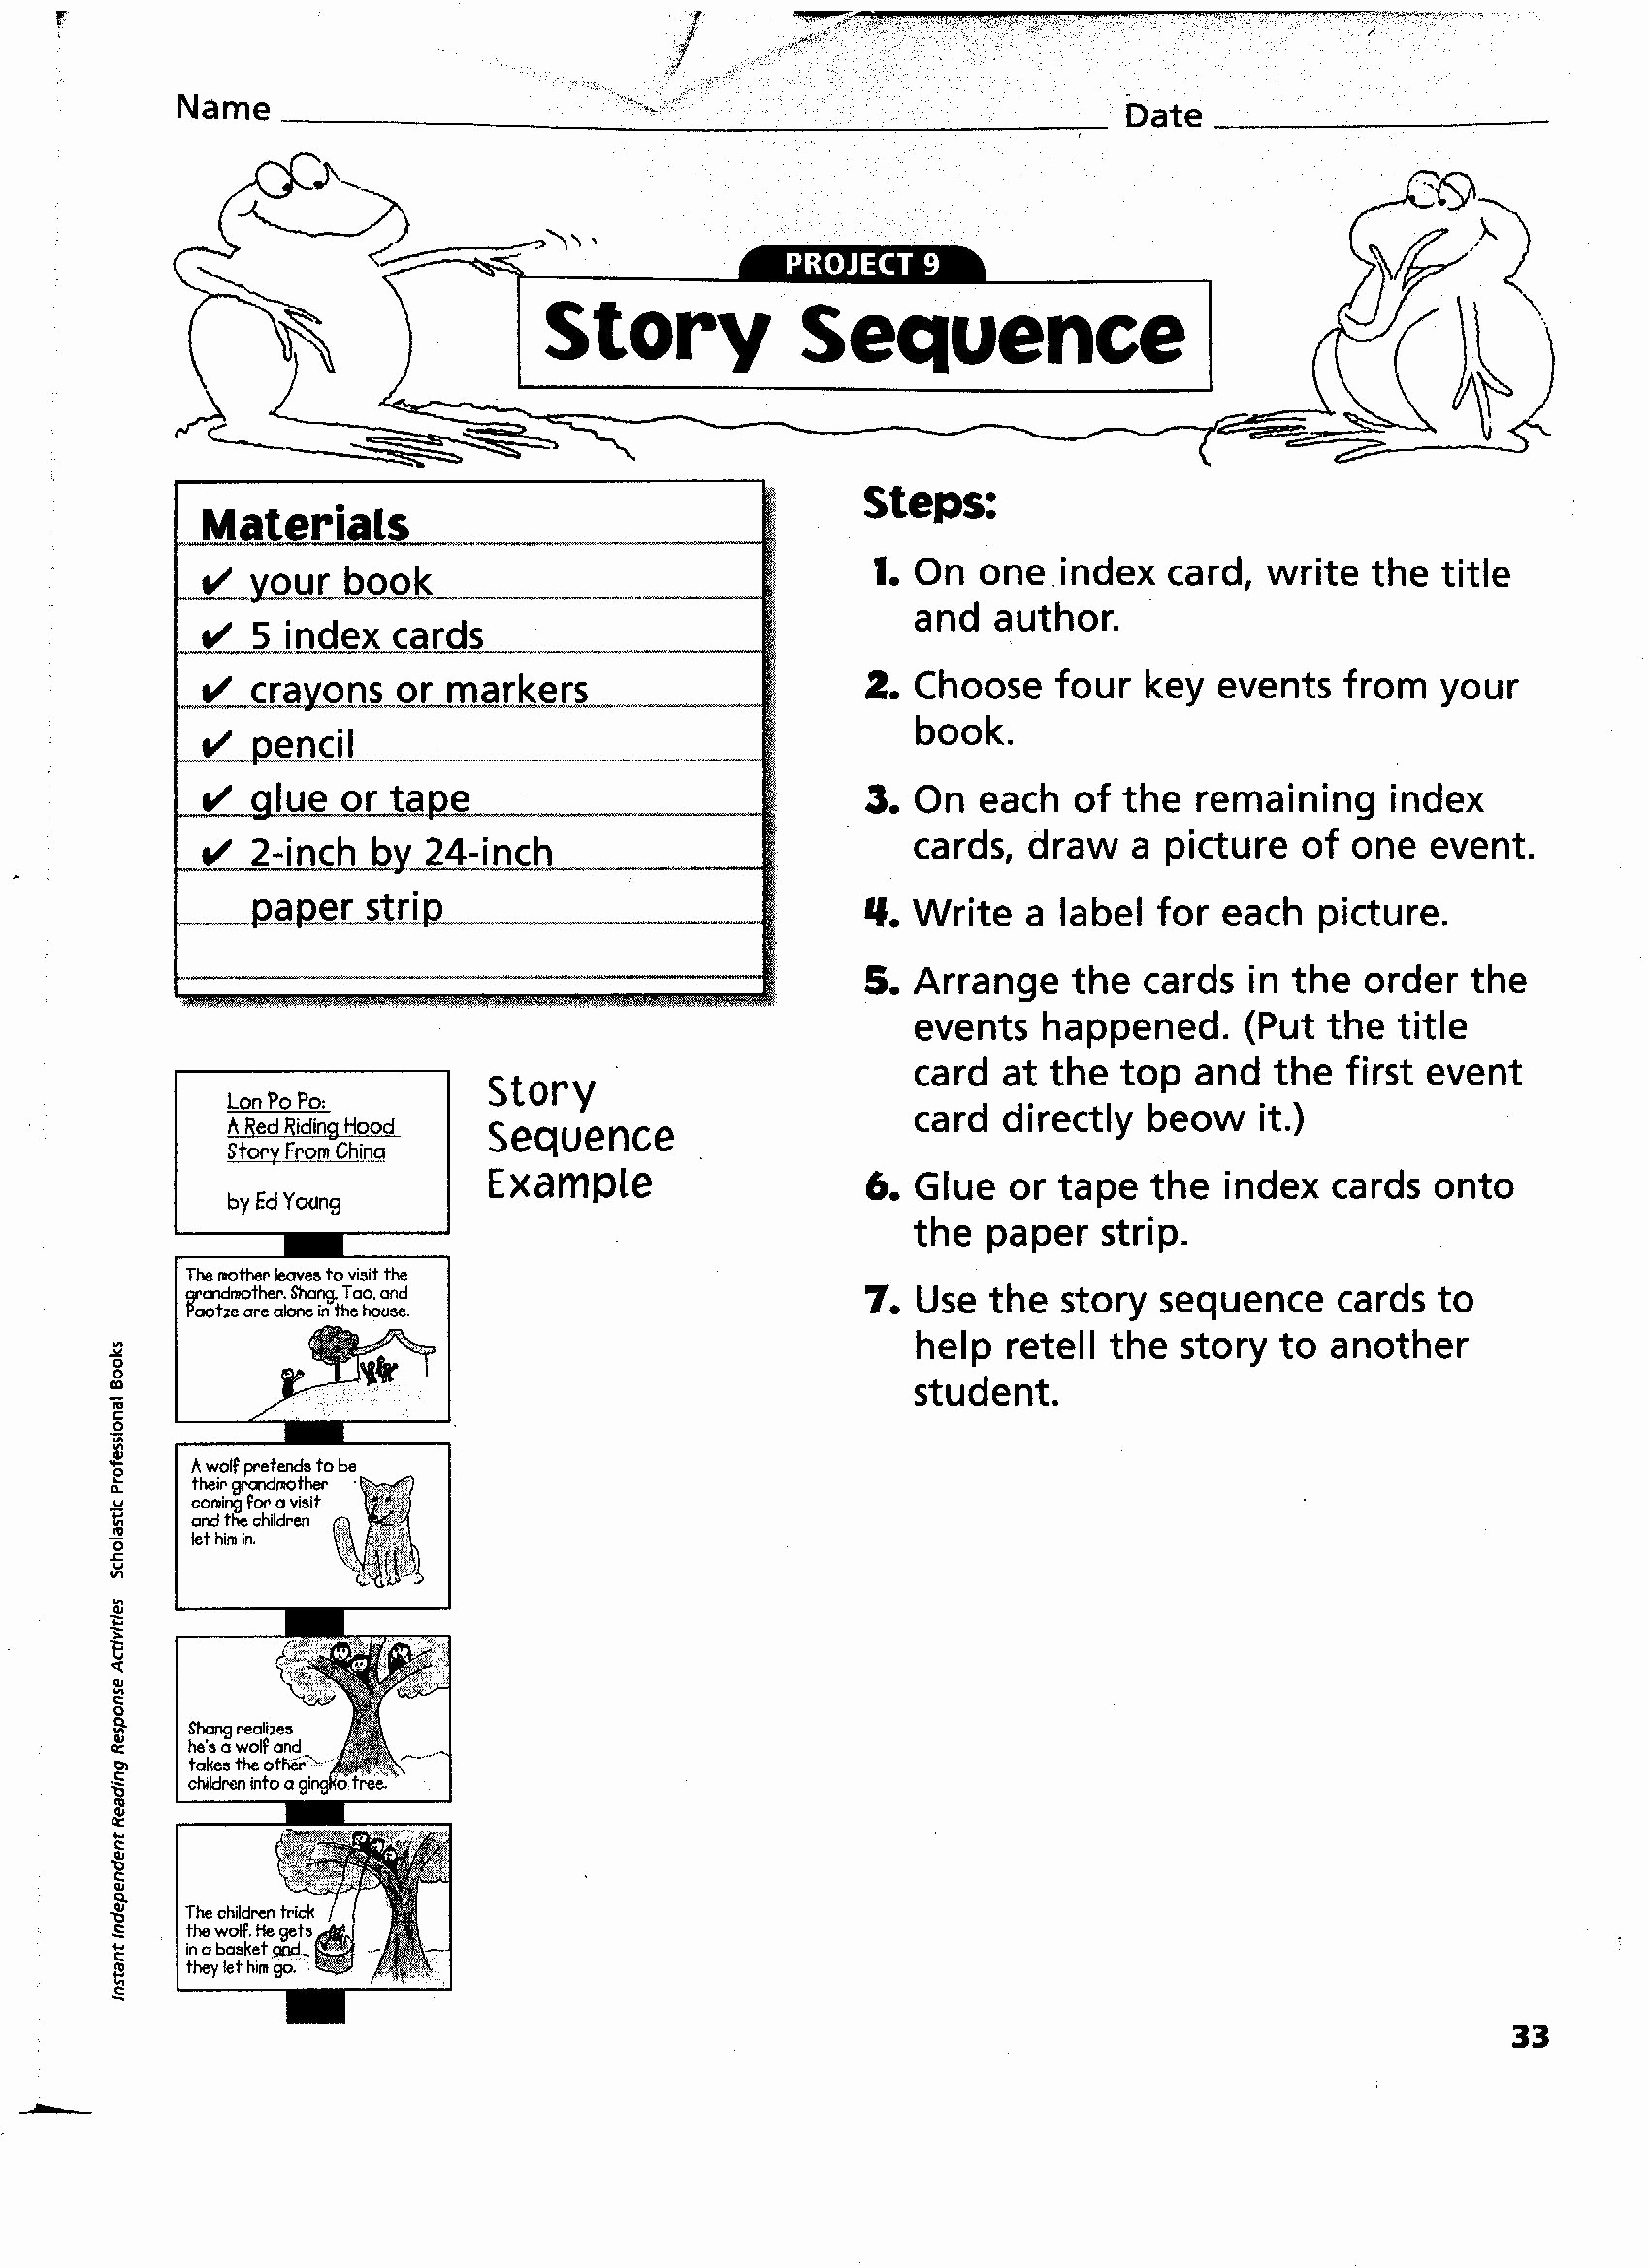 Sequencing Worksheets 4th Grade Awesome 4th Grade Printable Worksheet for Sequencing